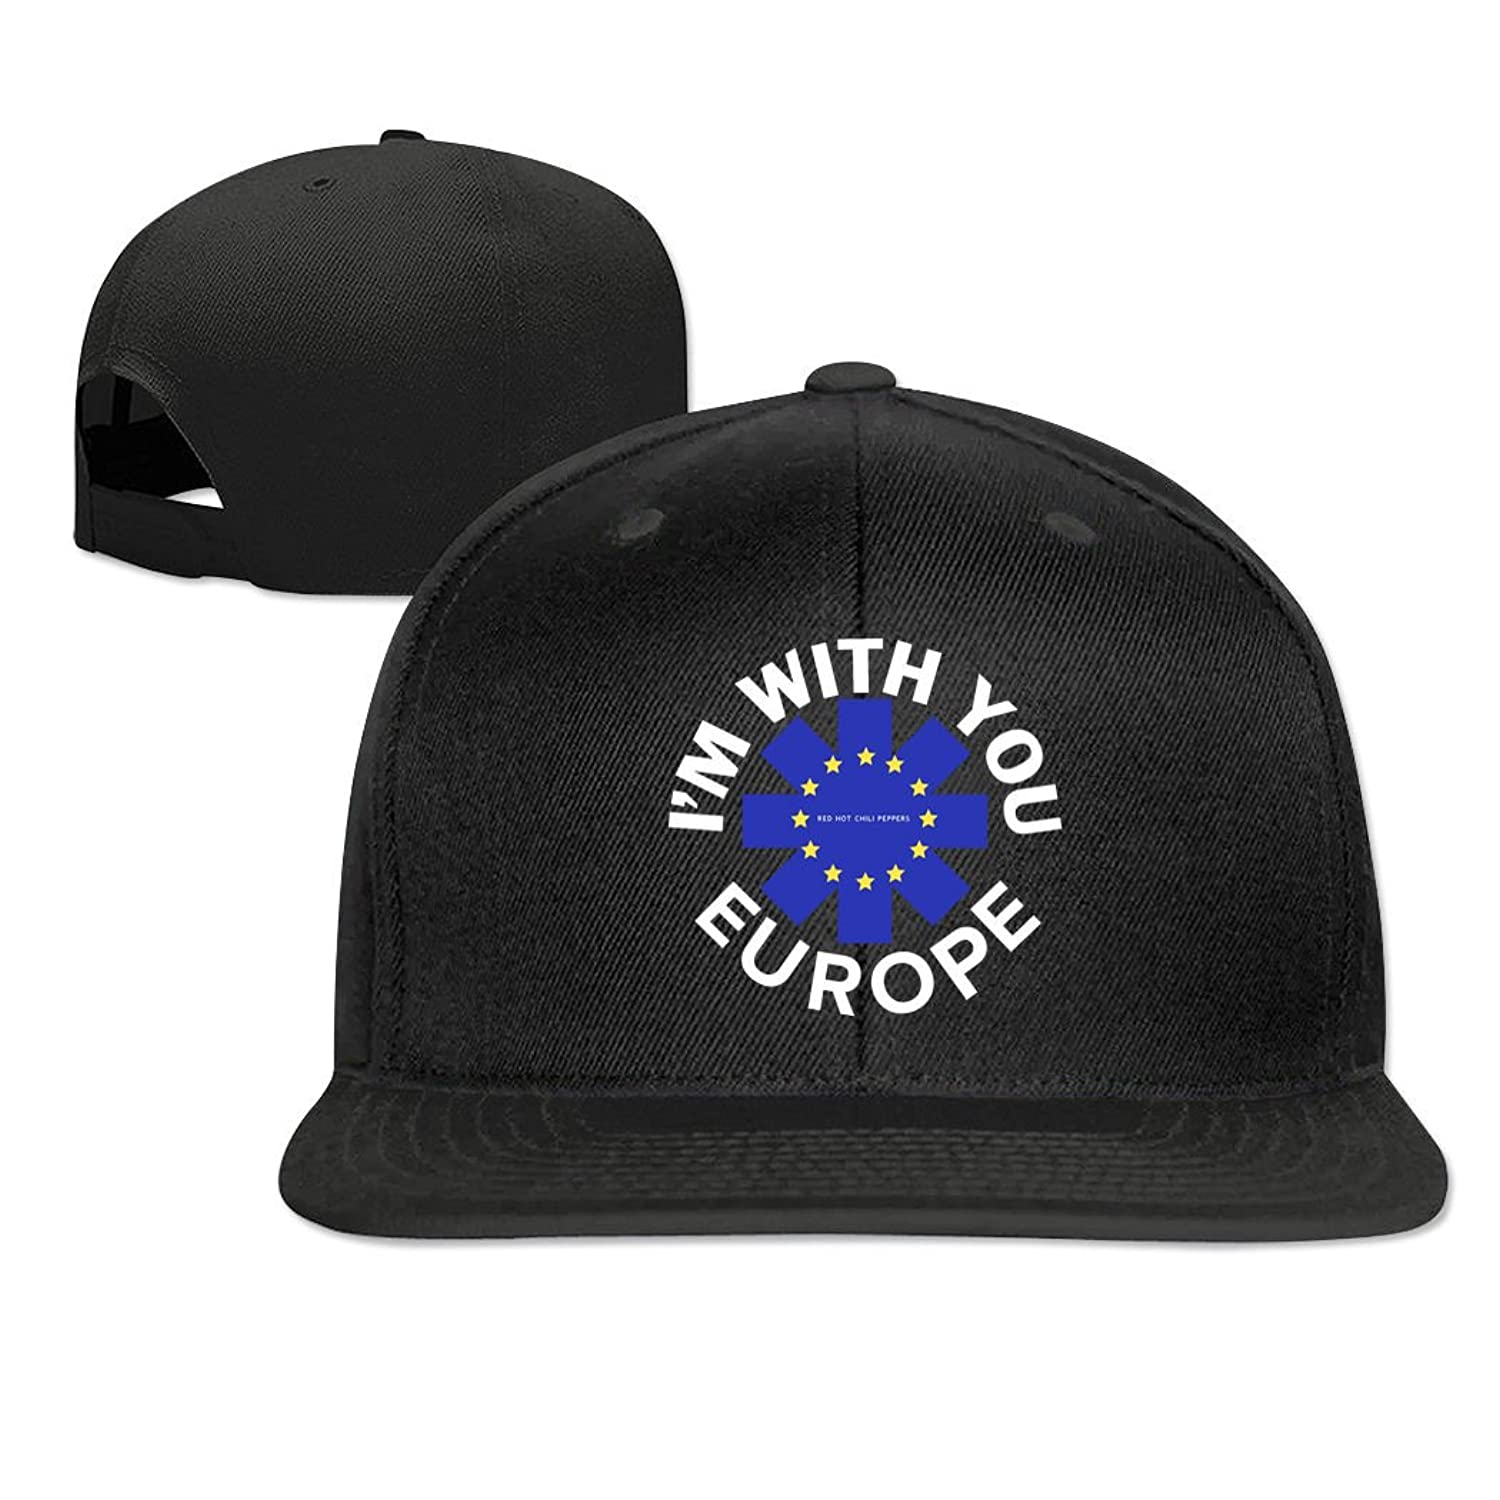 OB Snapback Clean Up Adjustable Baseball cap I'm With You Europe Hip Hop Hat and Cap